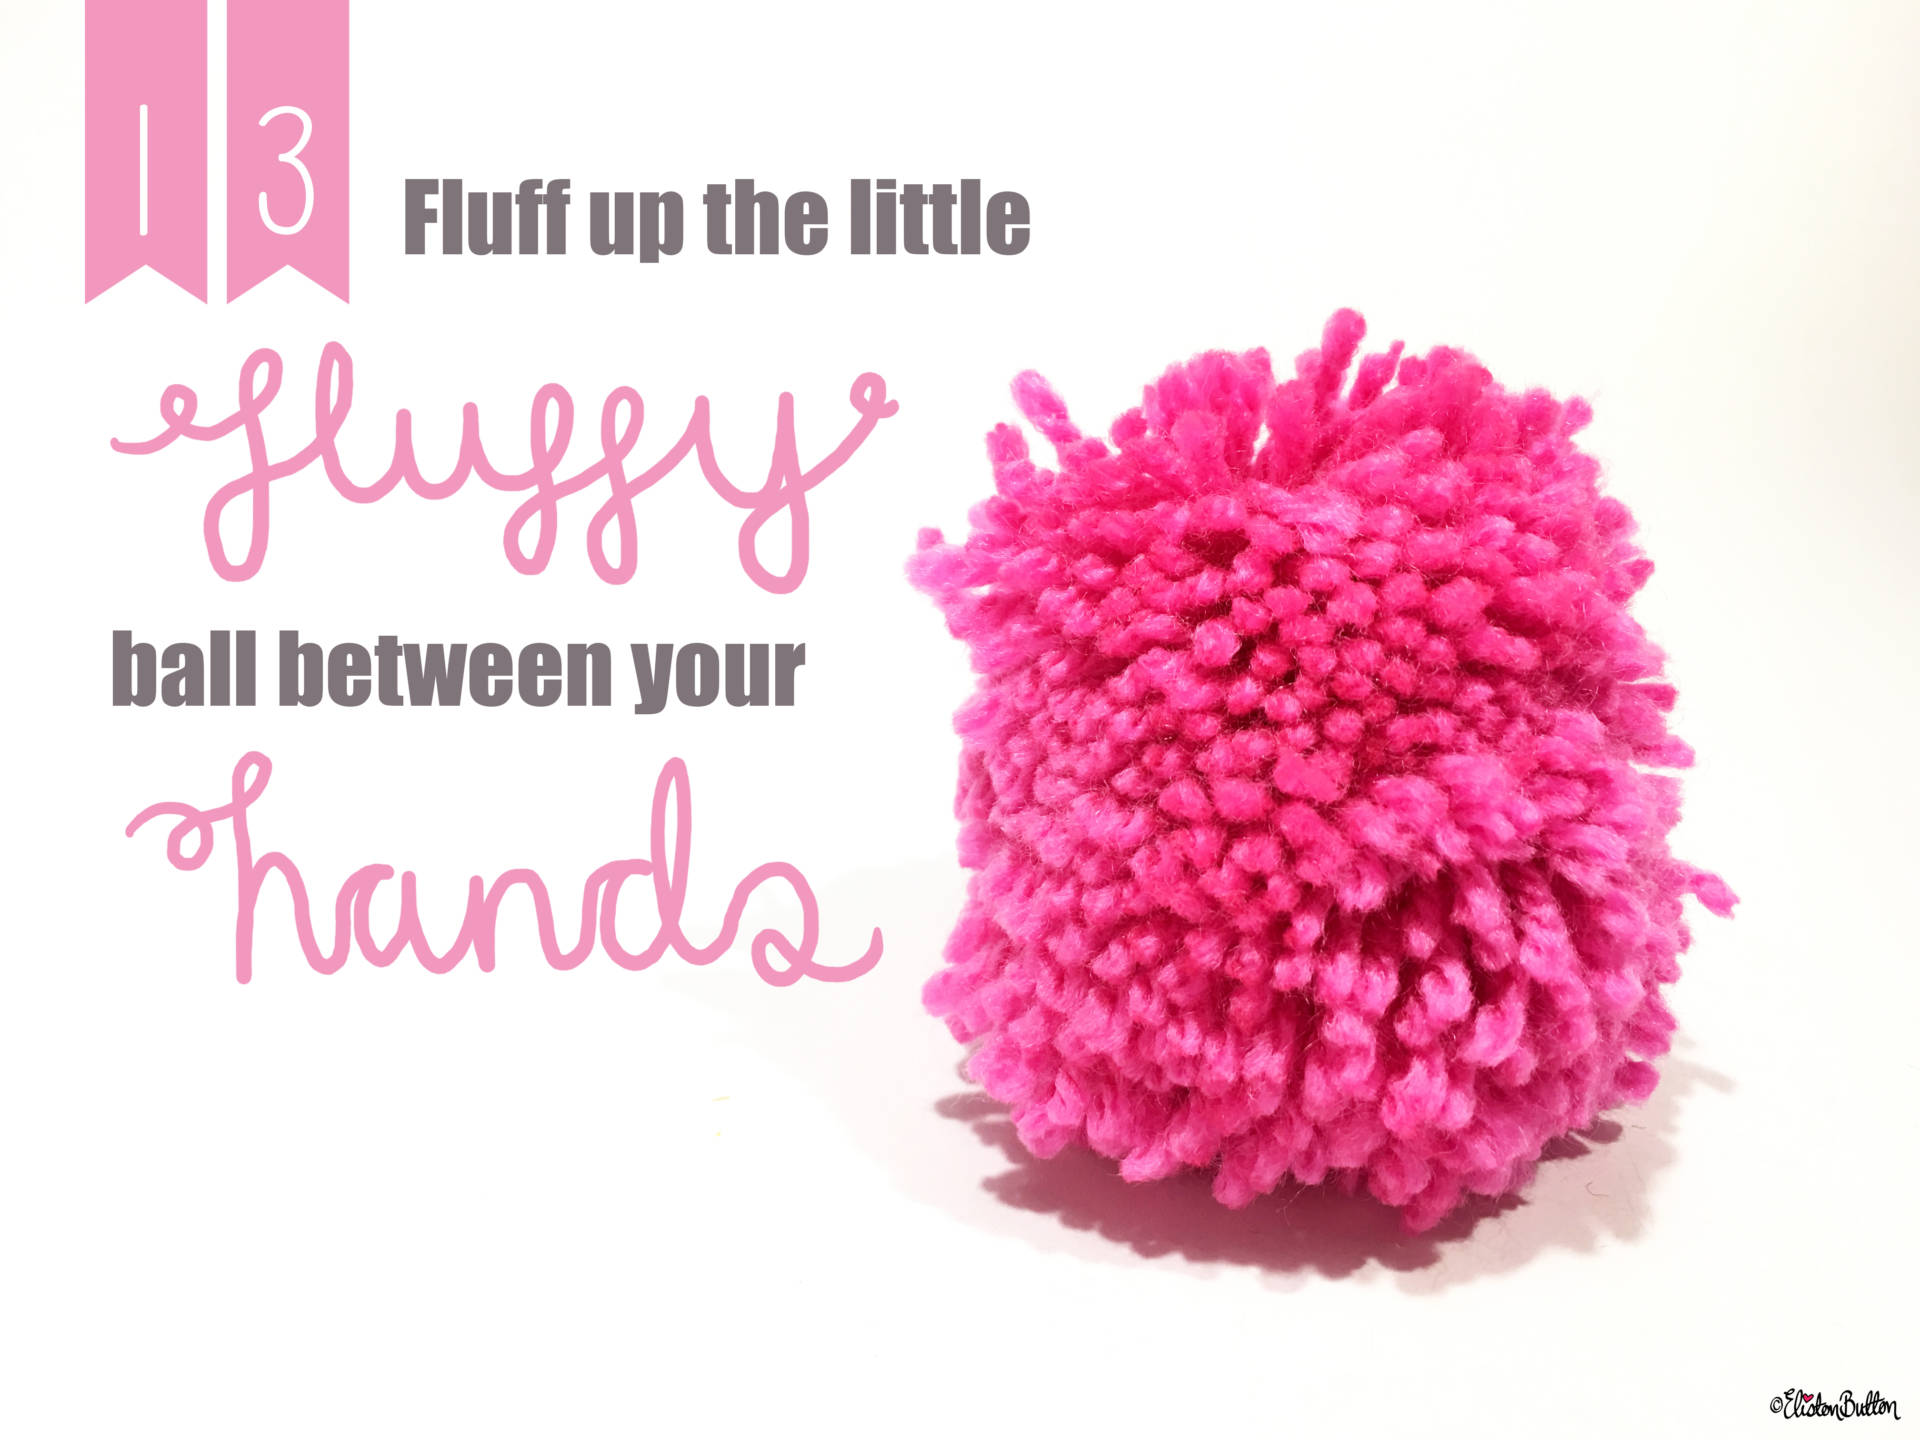 13. Fluff Up the Little Fluffy Ball Between your Hands... - Tutorial Tuesday - Clover Pom Pom Maker at www.elistonbutton.com - Eliston Button - That Crafty Kid – Art, Design, Craft & Adventure.